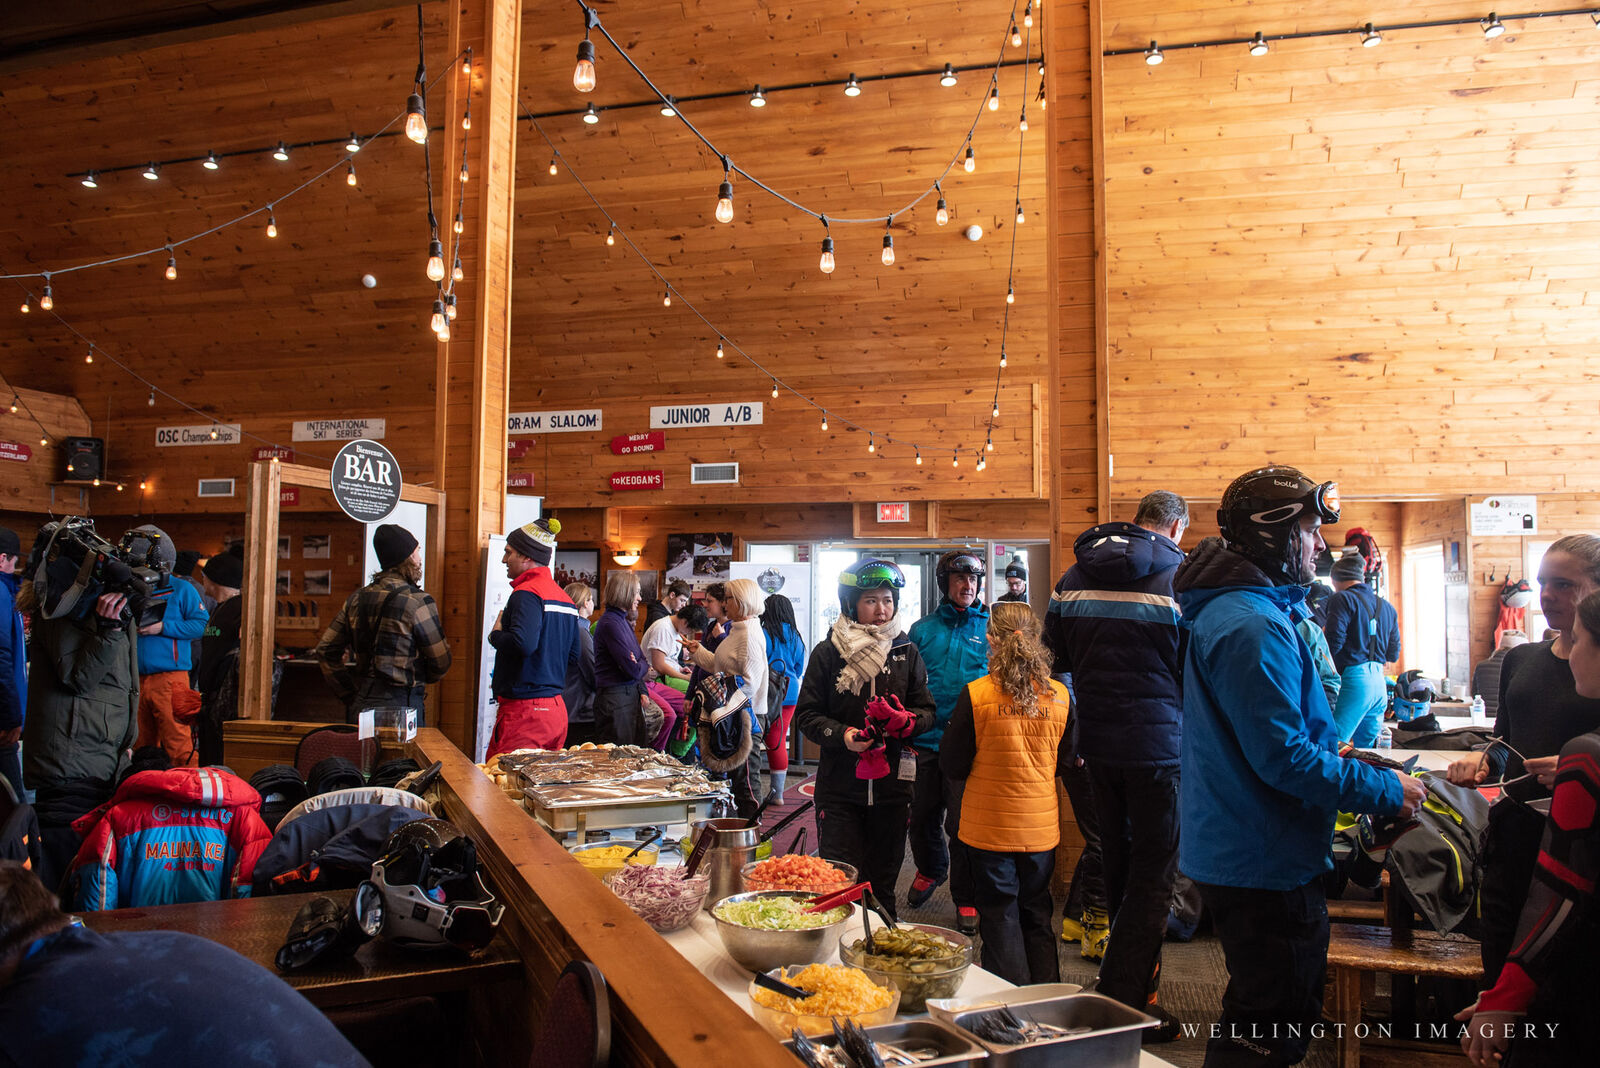 ©WELLINGTONIMAGERY 20190228 120000 BGCO Skiathon 0239 WM 2048px